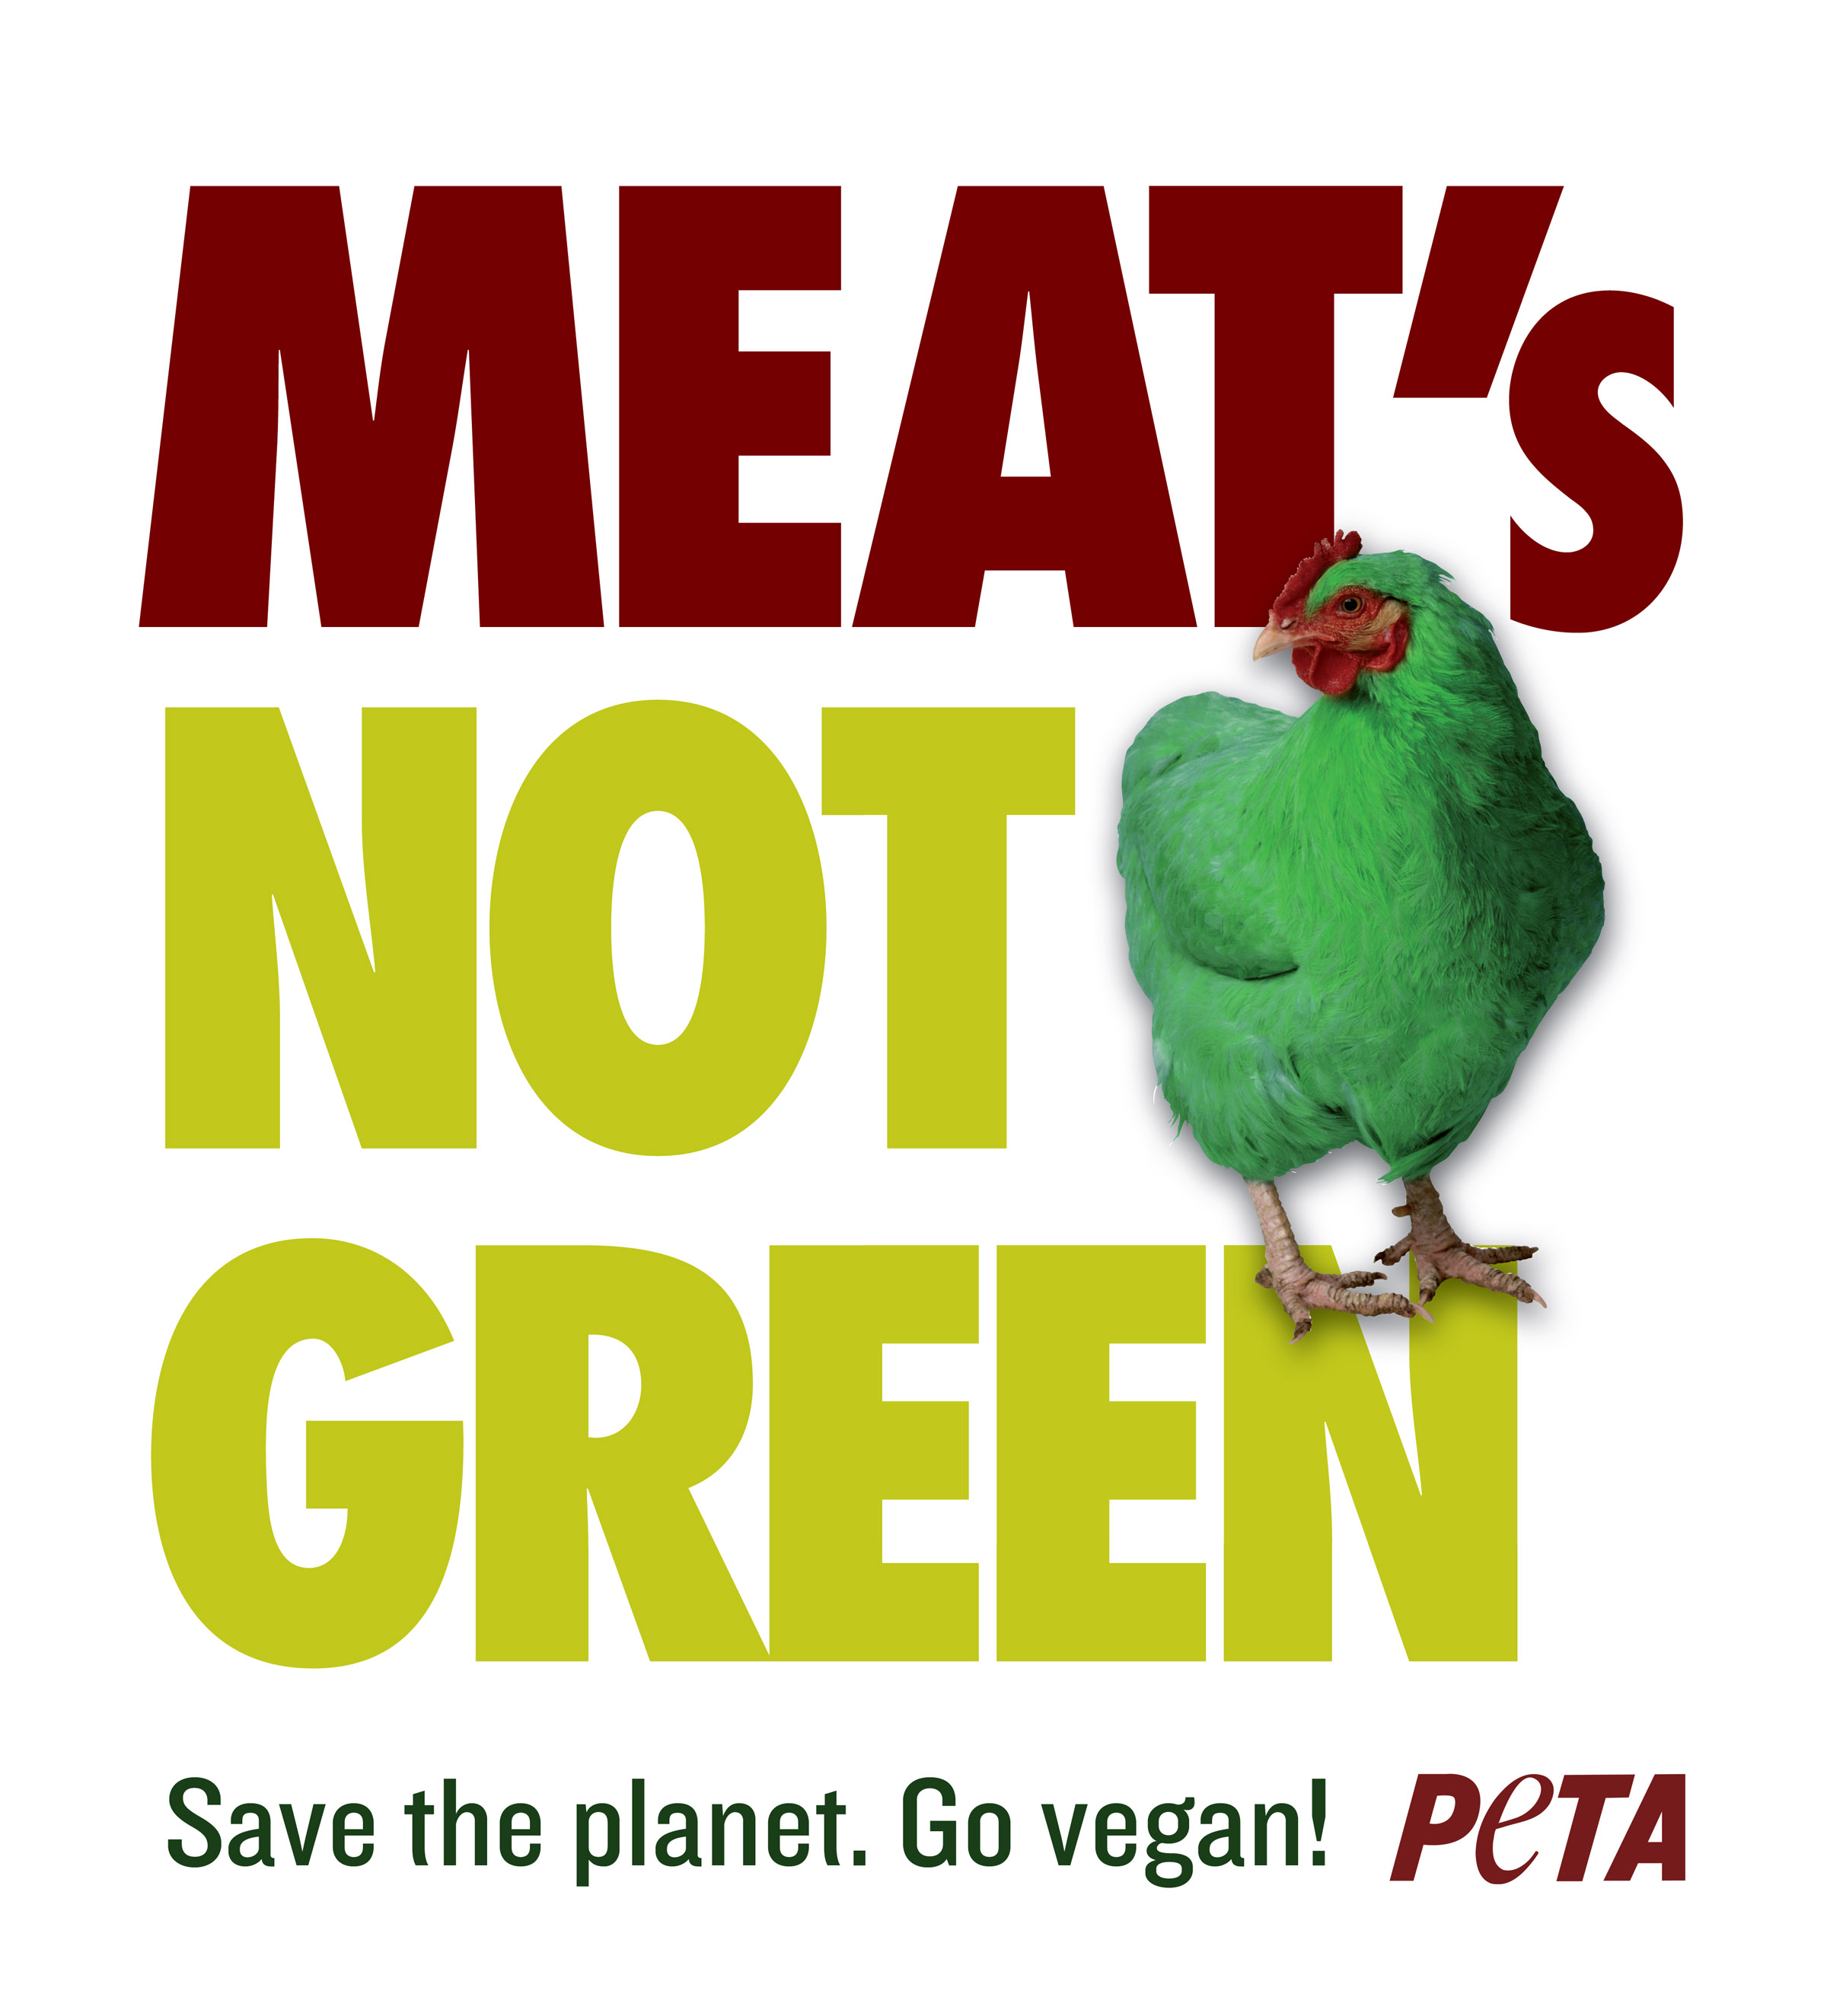 PETA Offers To Support Green Synagogue- But Only If They Promote Going Vegan!